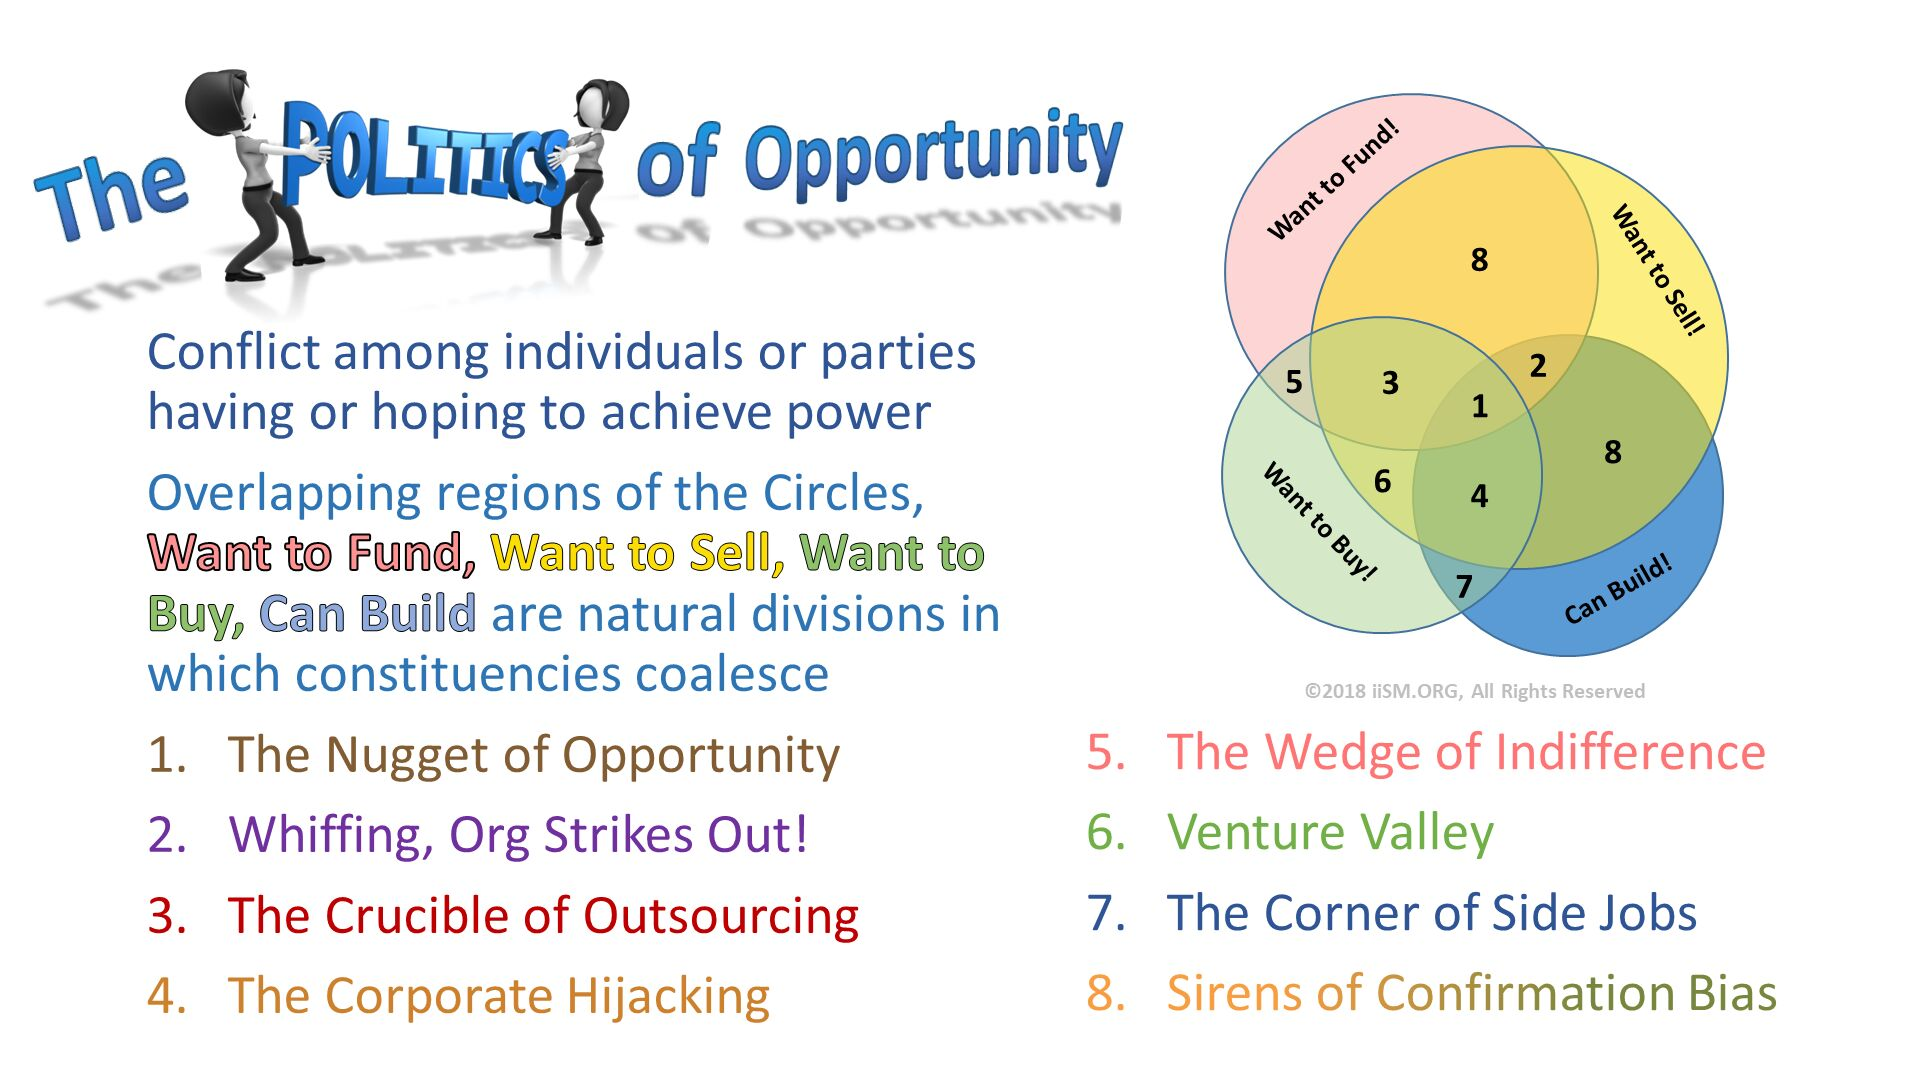 Conflict among individuals or parties having or hoping to achieve power Overlapping regions of the Circles, Want to Fund, Want to Sell, Want to Buy, Can Build are natural divisions in which constituencies coalesce The Nugget of Opportunity Whiffing, Org Strikes Out! The Crucible of Outsourcing The Corporate Hijacking . The Wedge of Indifference Venture Valley The Corner of Side Jobs Sirens of Confirmation Bias .